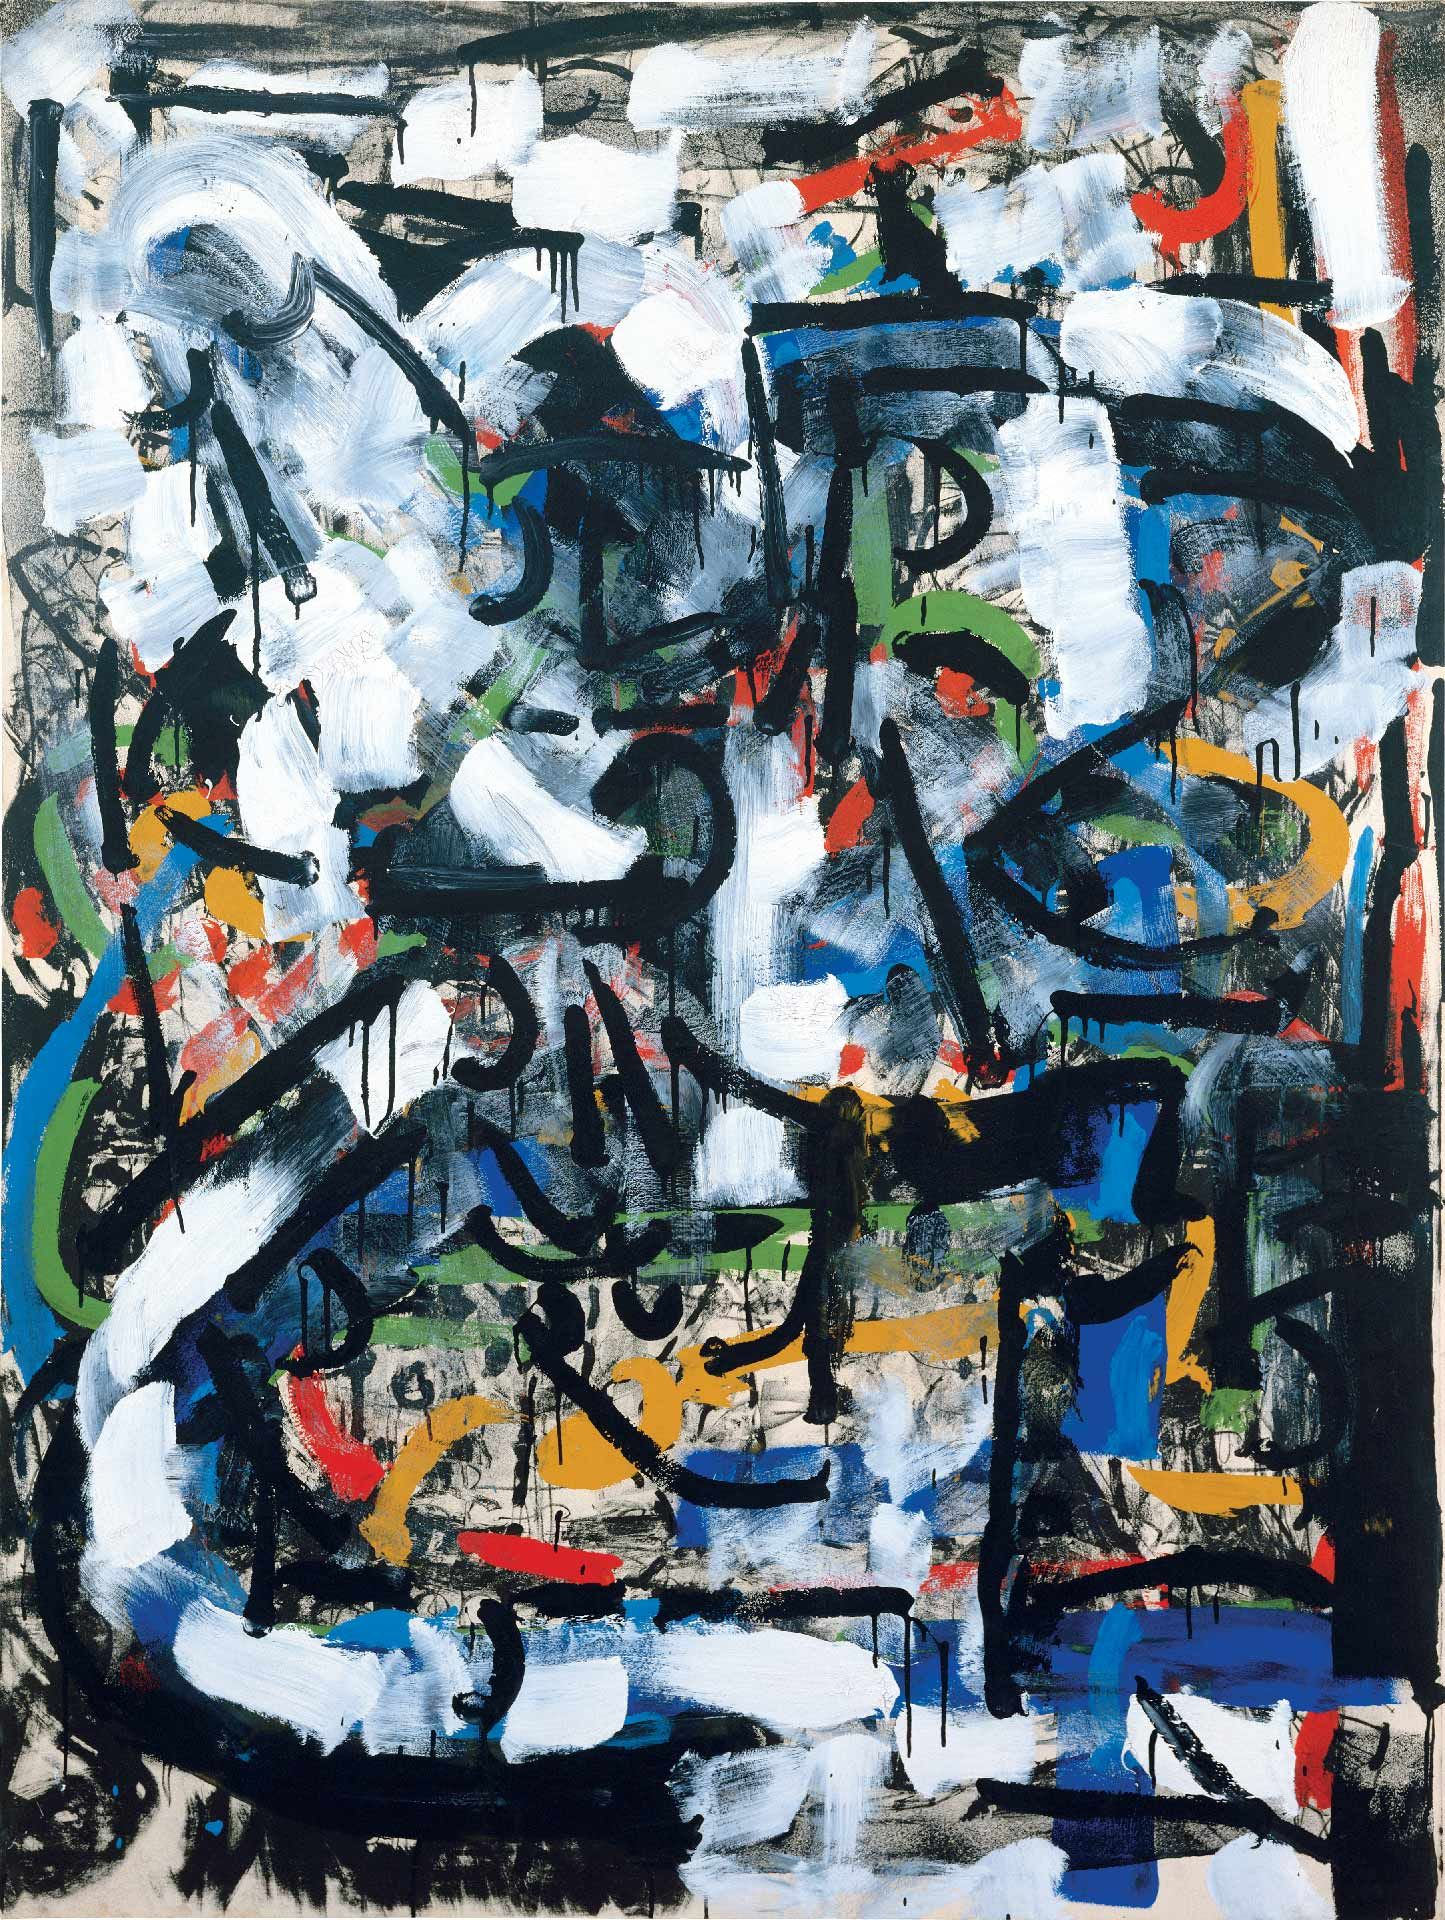 Jean Paul Riopelle (1923-2002), Landscape, 1971, acrylic on lithograph mounted on canvas, 160 x 120 cm. Collection of the Charest family. © Estate of Jean Paul Riopelle / SOCAN (2020)